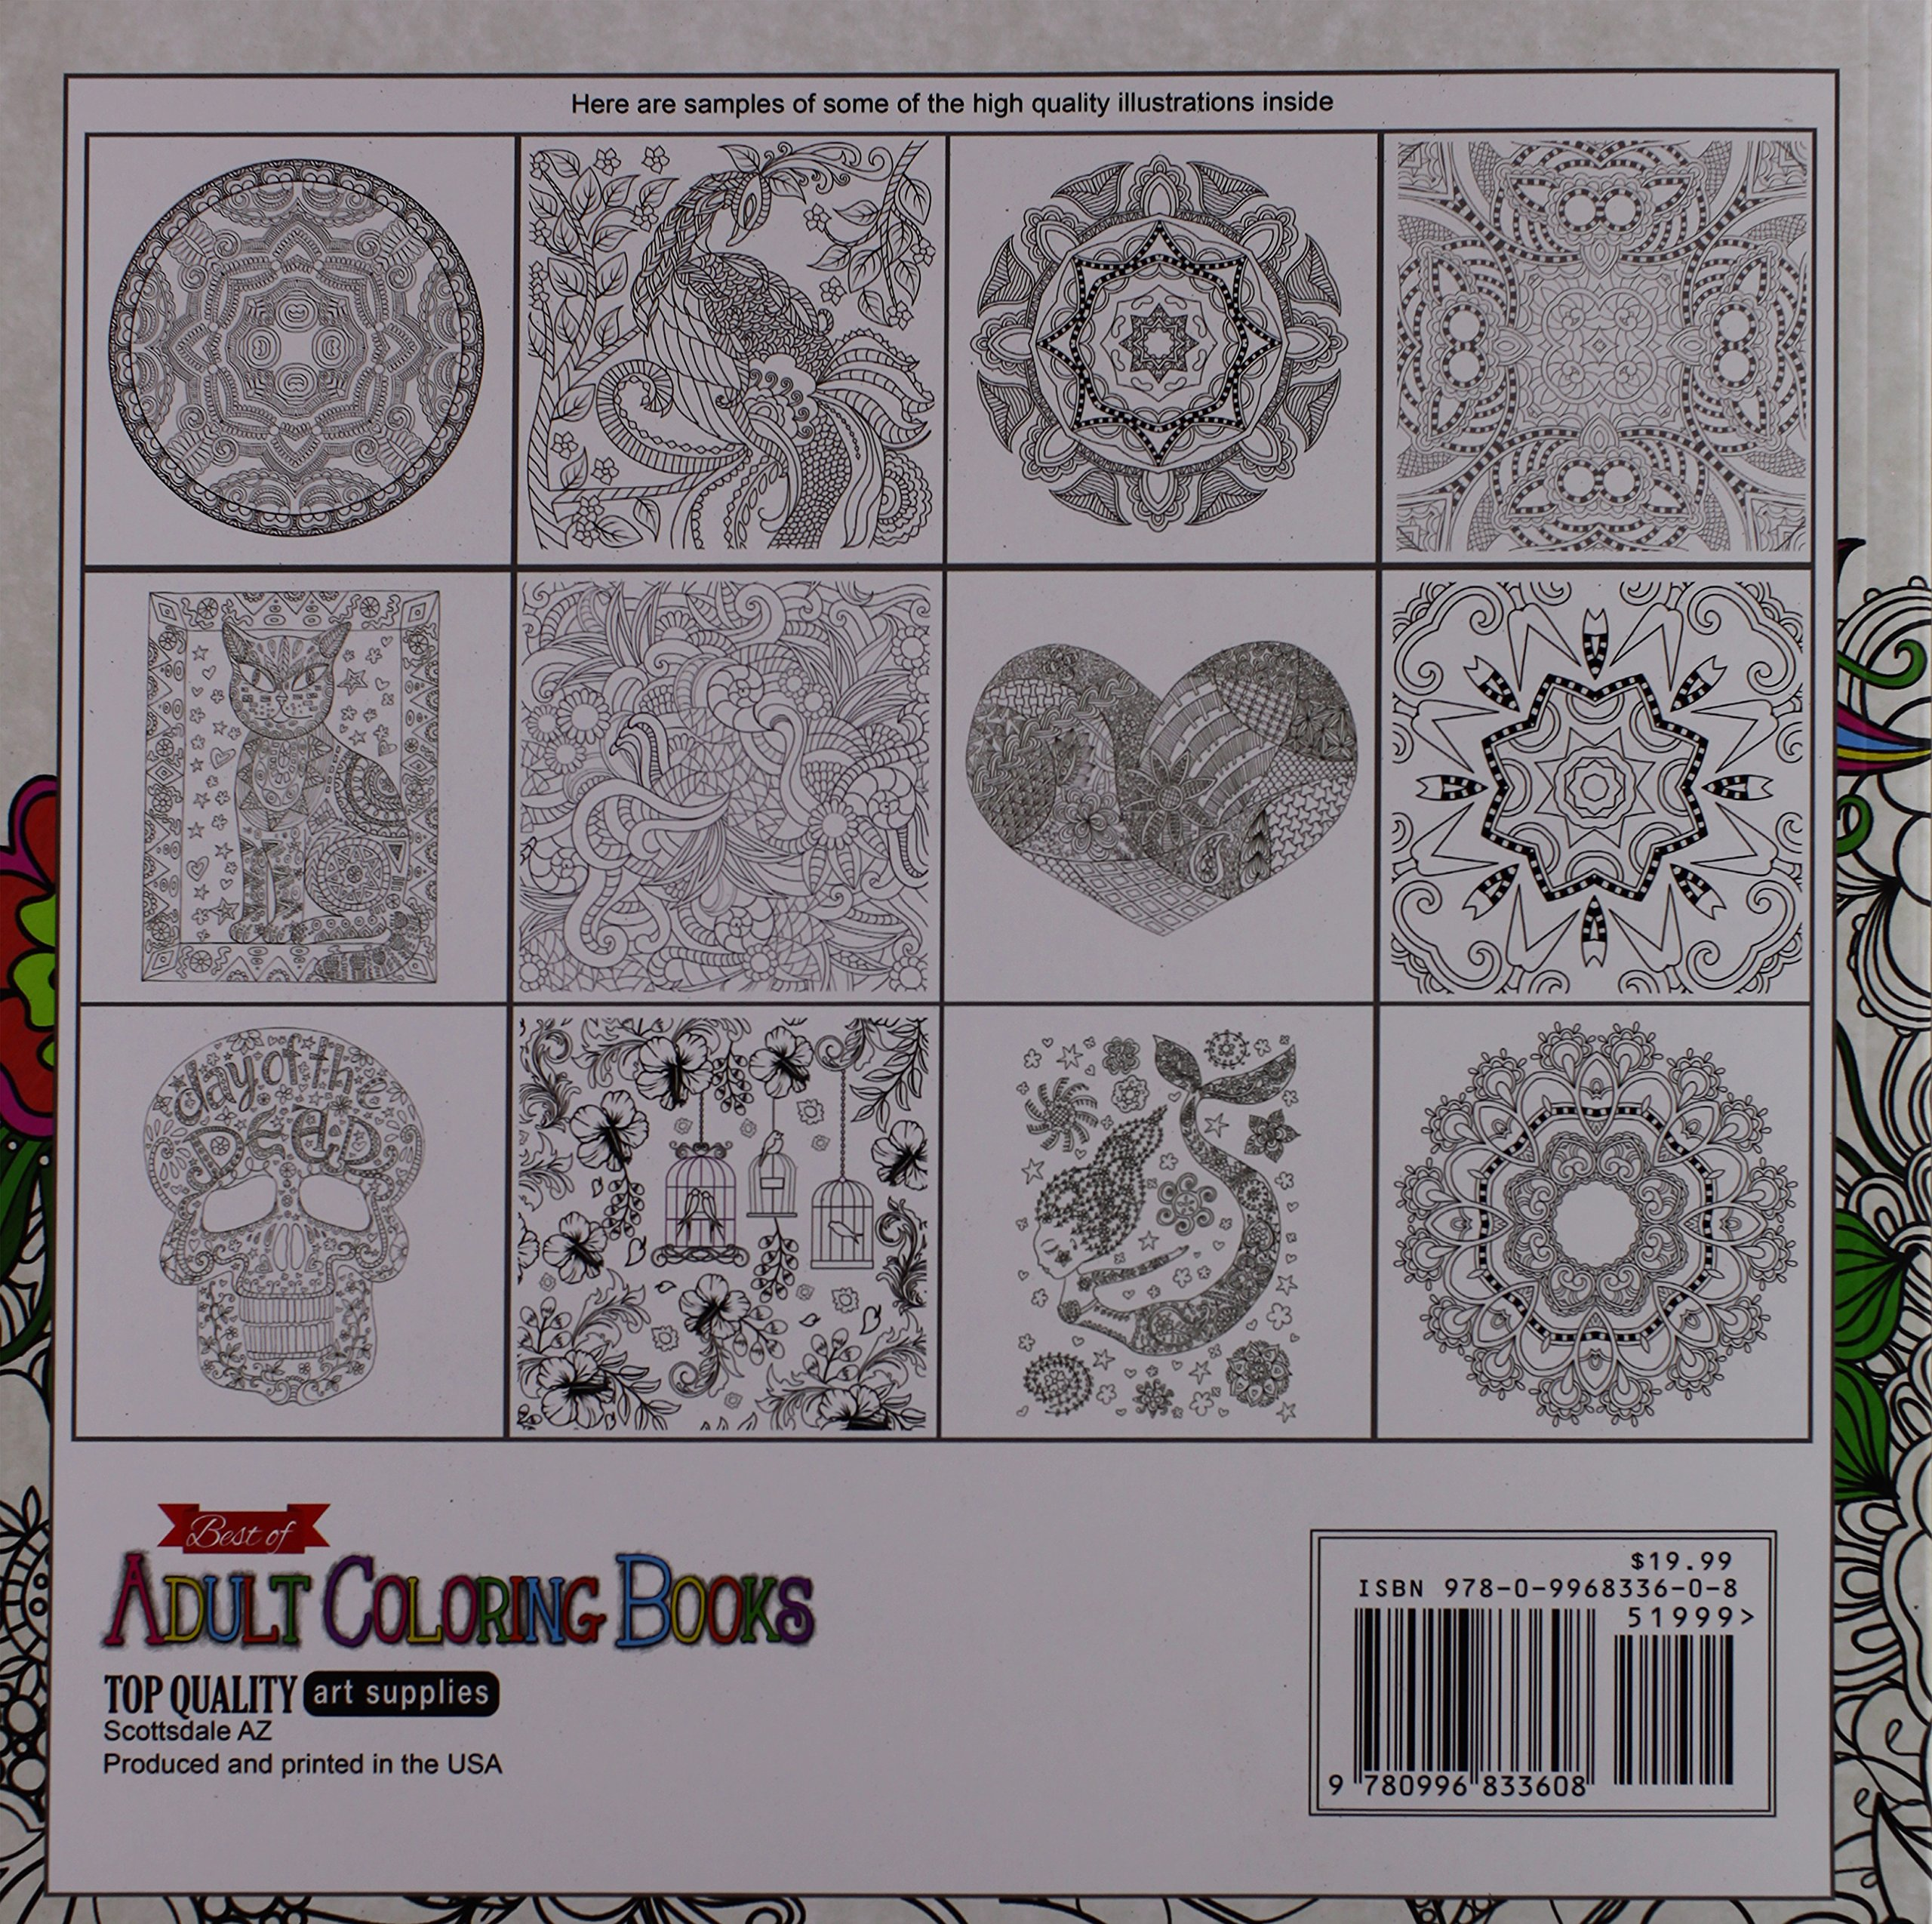 best of coloring books top quality art supplies ben drolet